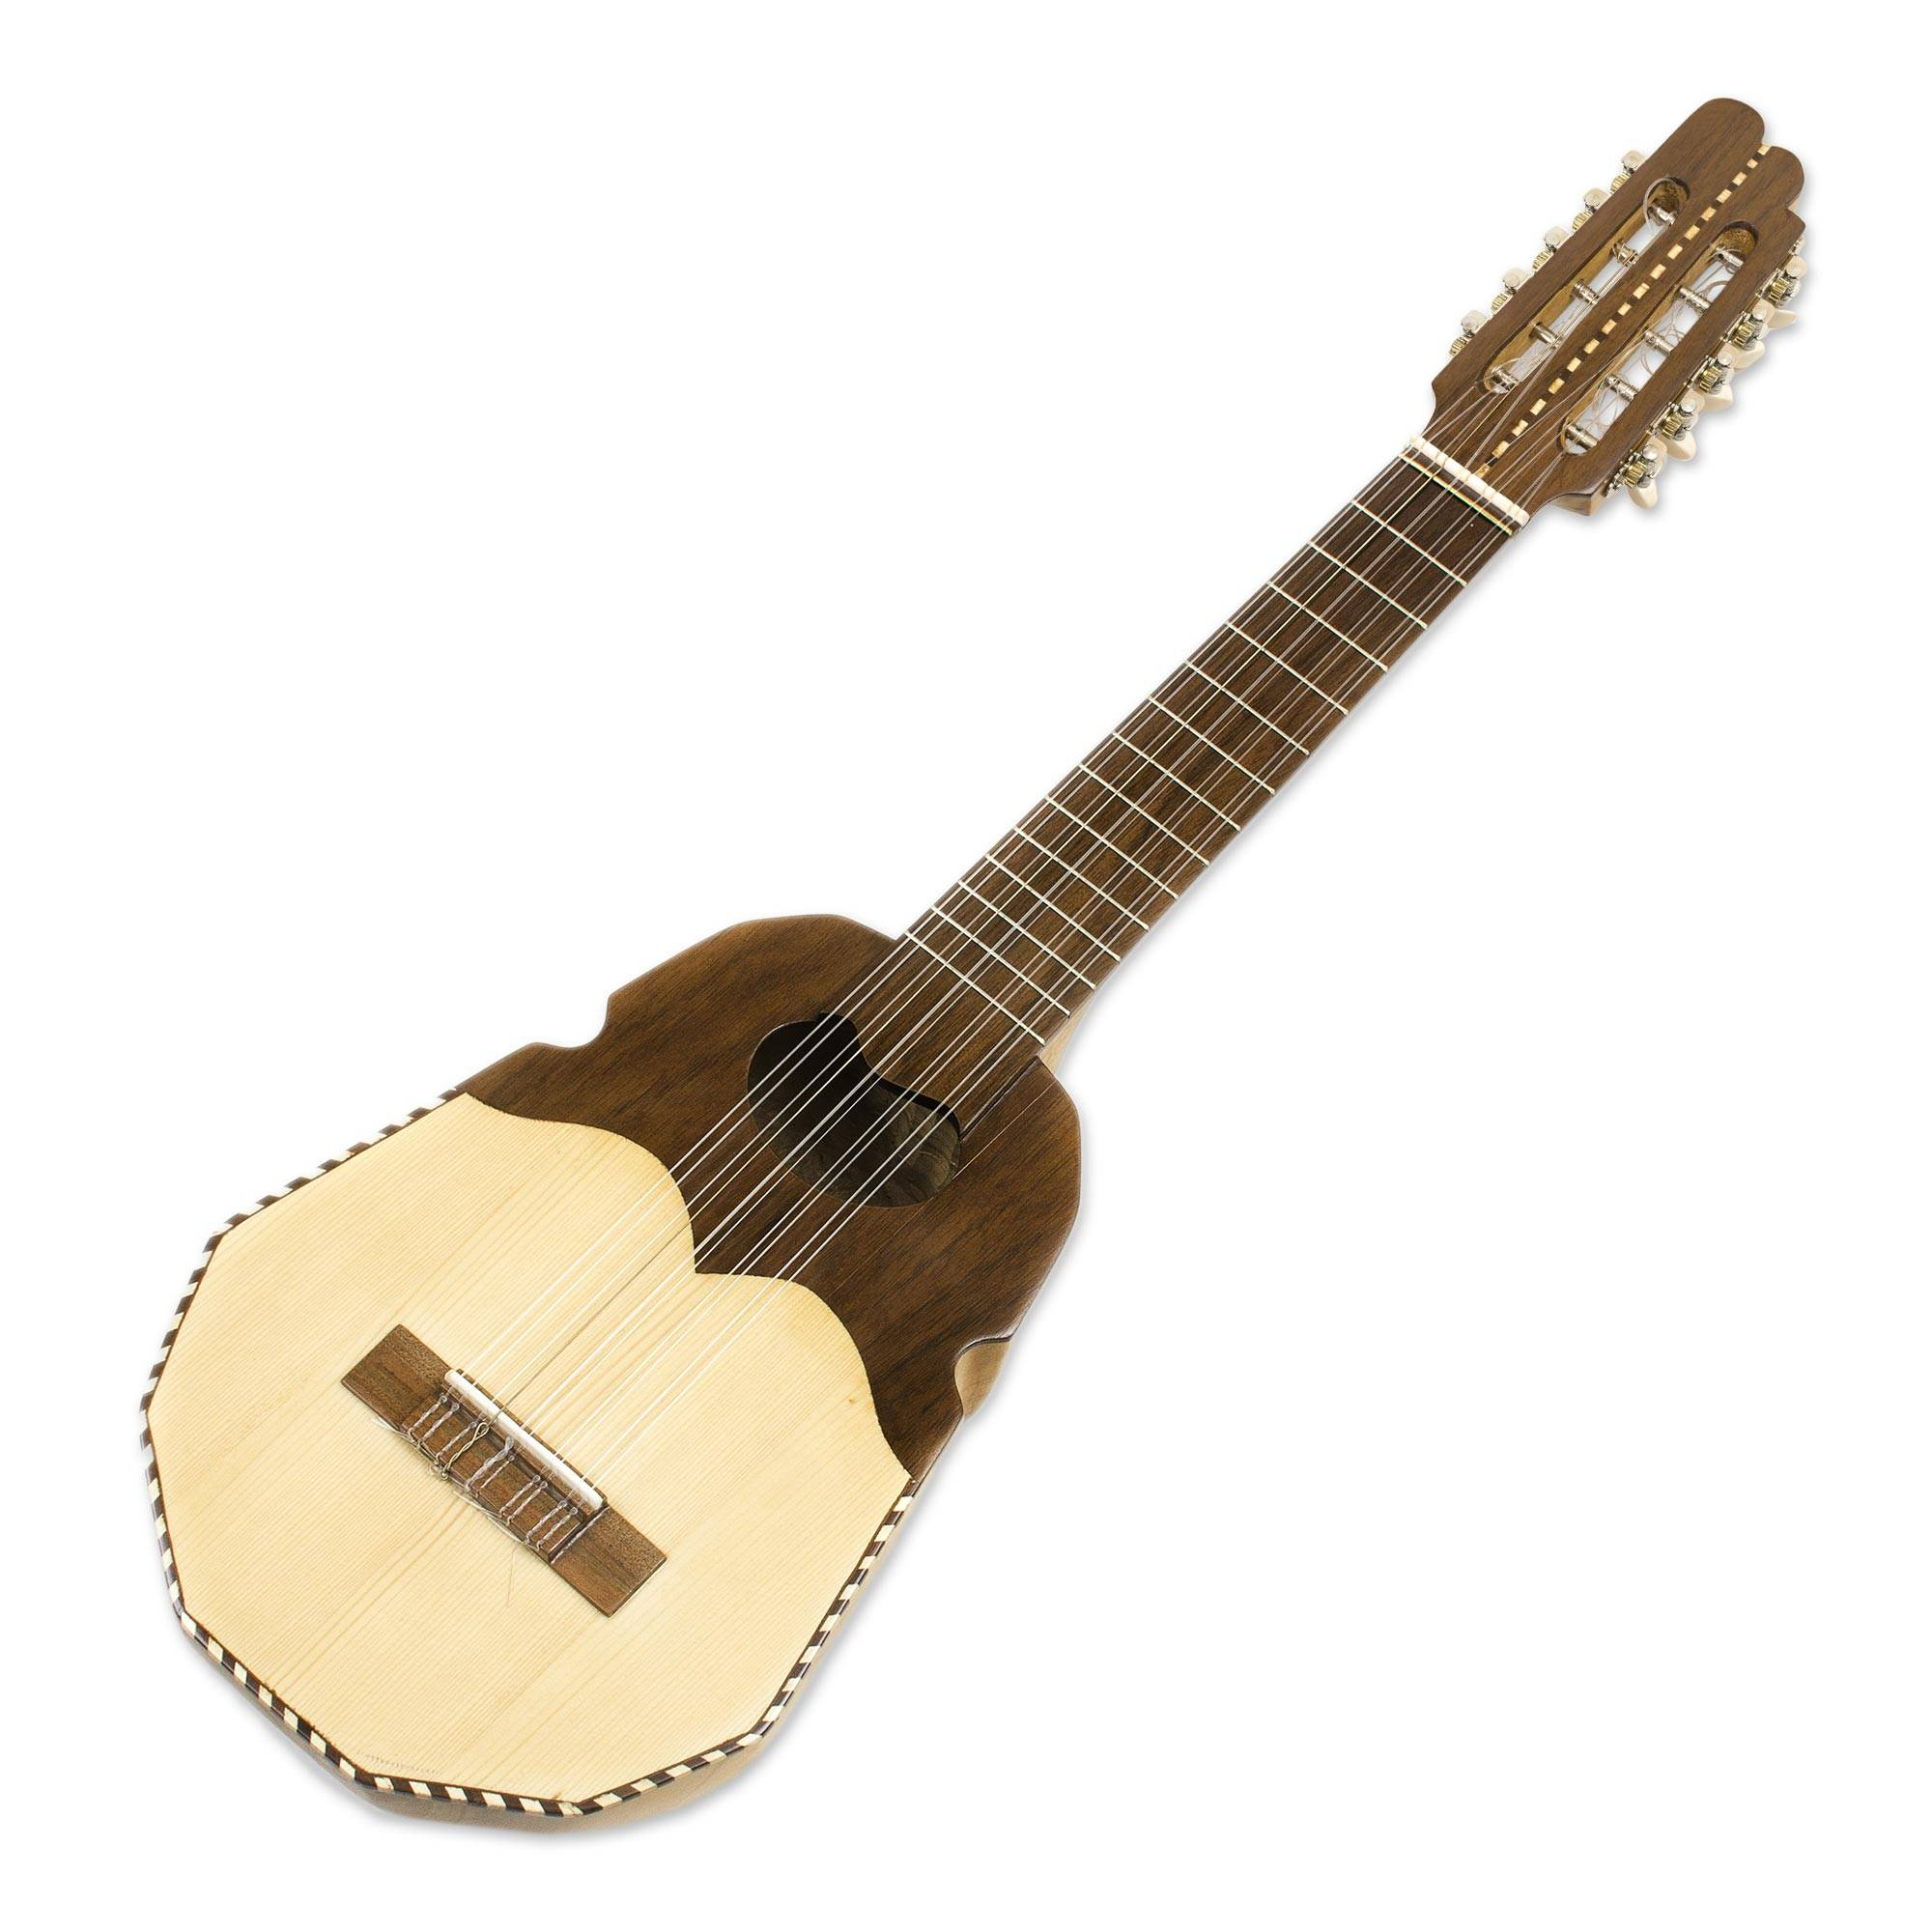 Wood ronroco guitar